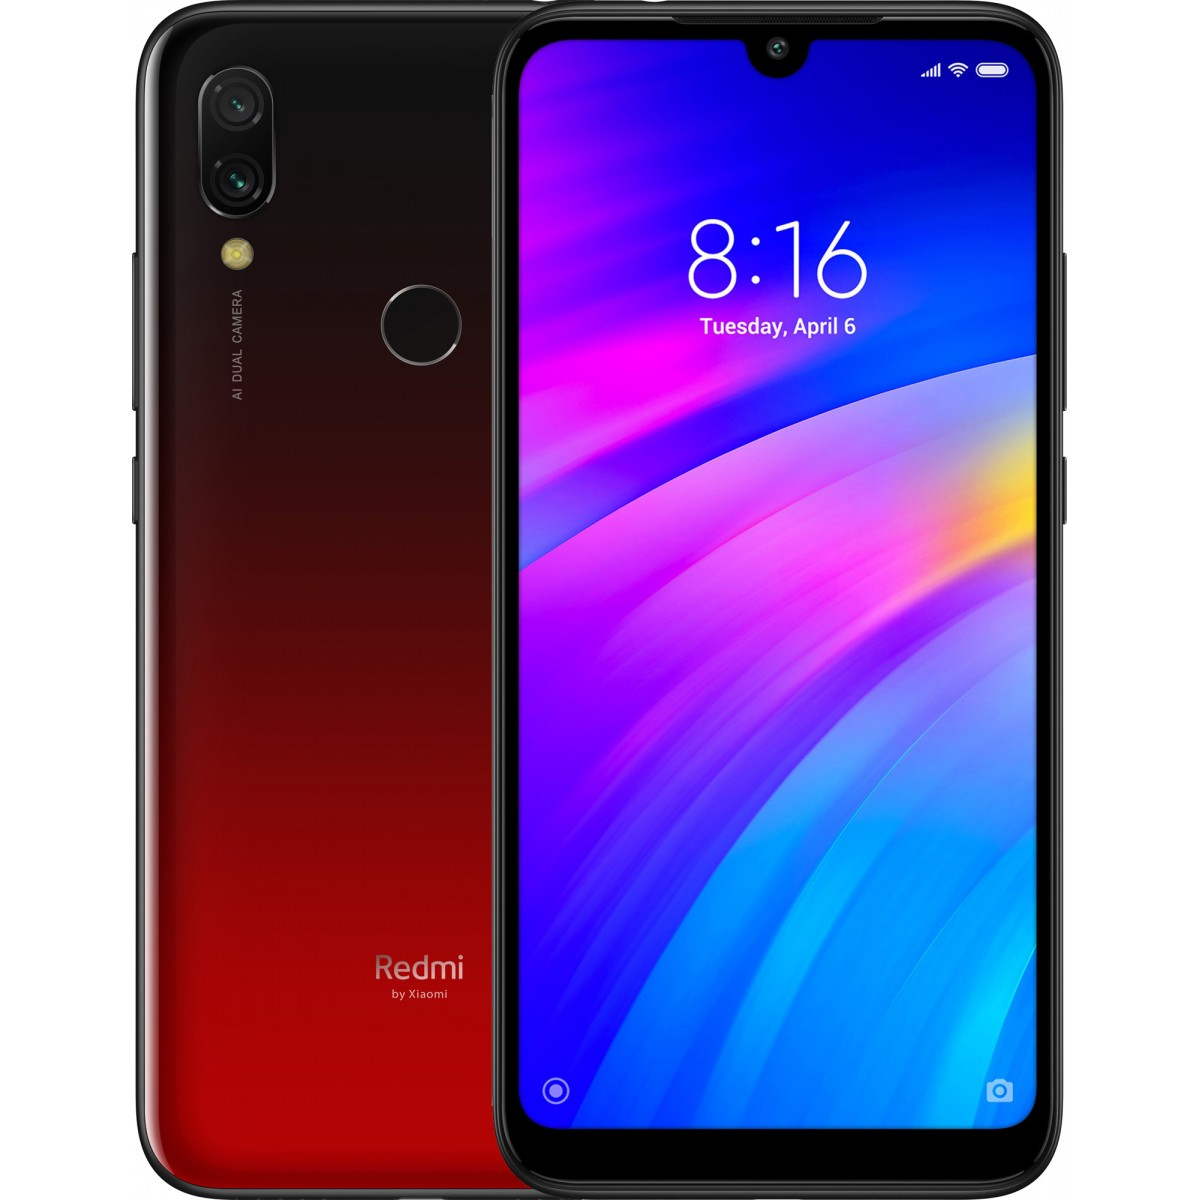 Xiaomi Redmi 7 Dual SIM - 16GB, 2GB RAM, 4G LTE, Red Global Versia